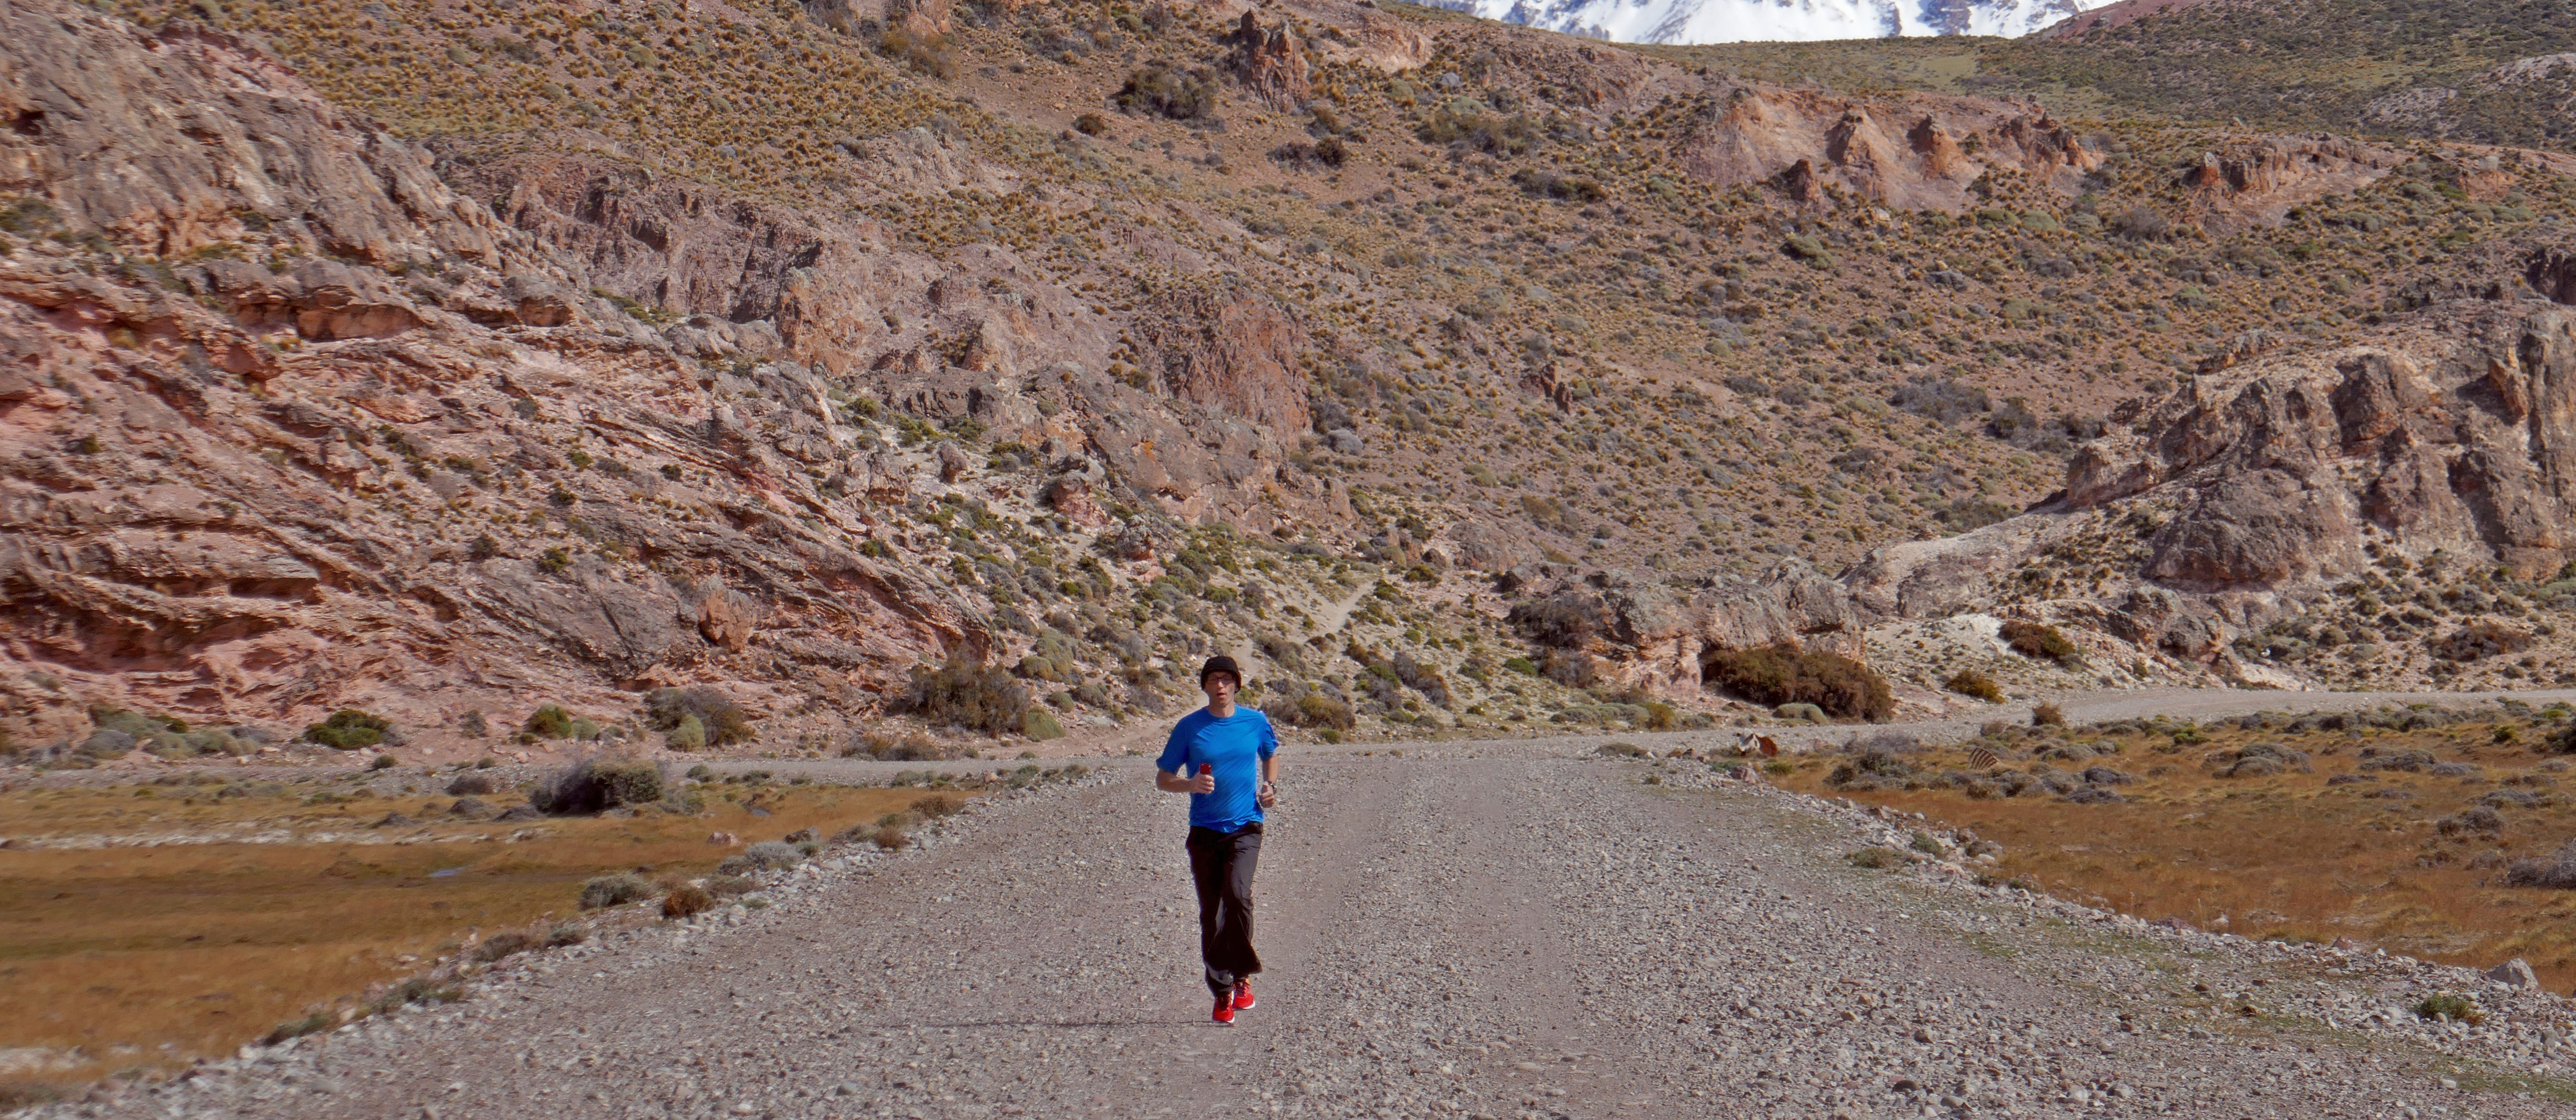 Running - a path to health